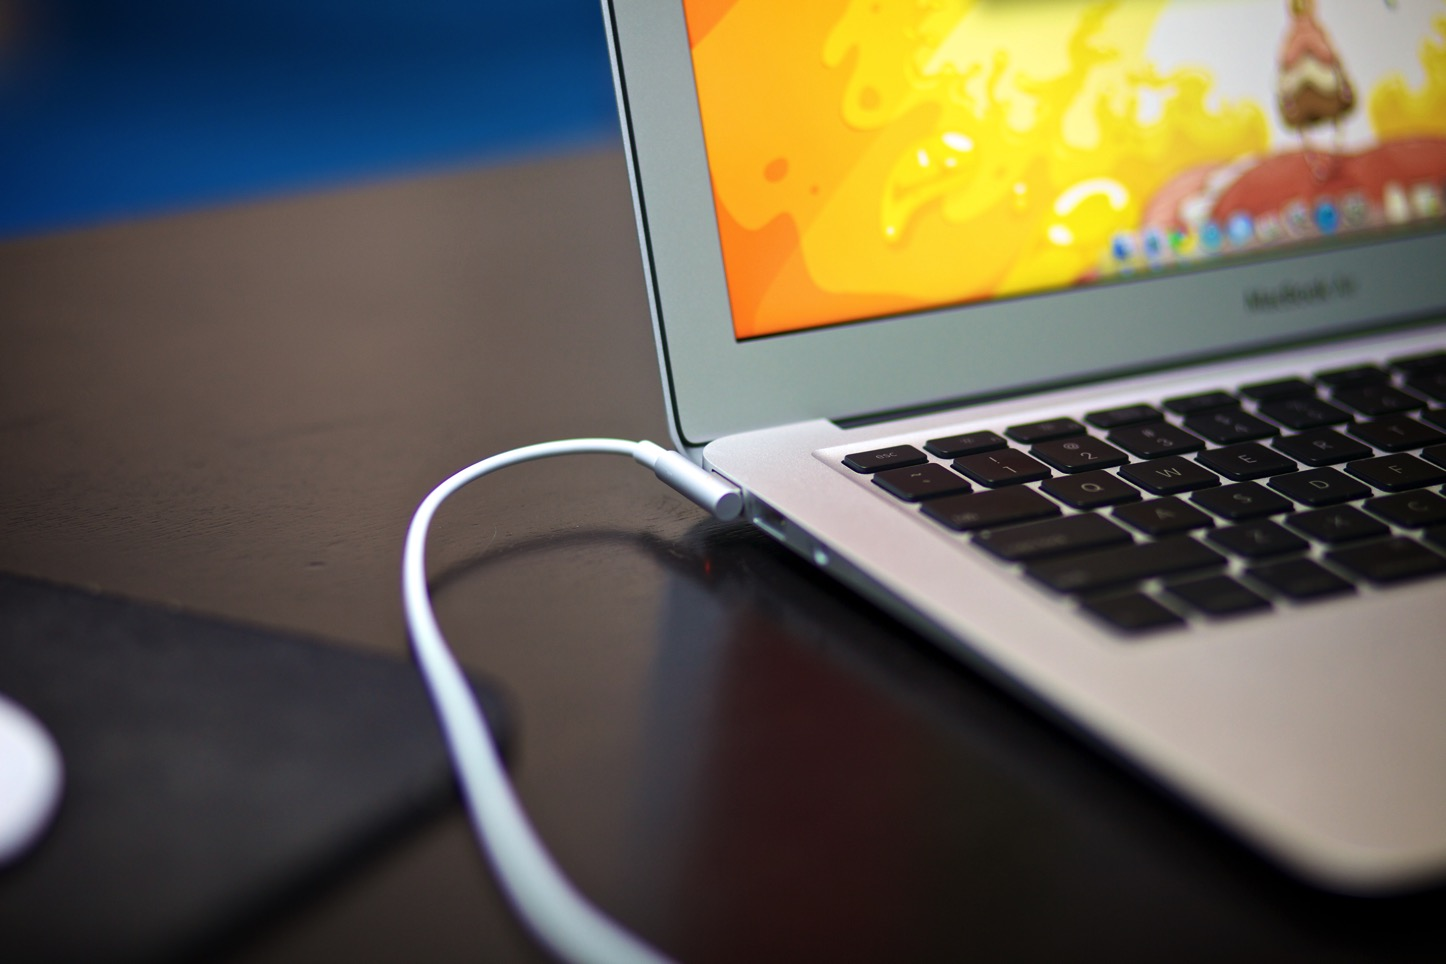 Macbook air magsafe